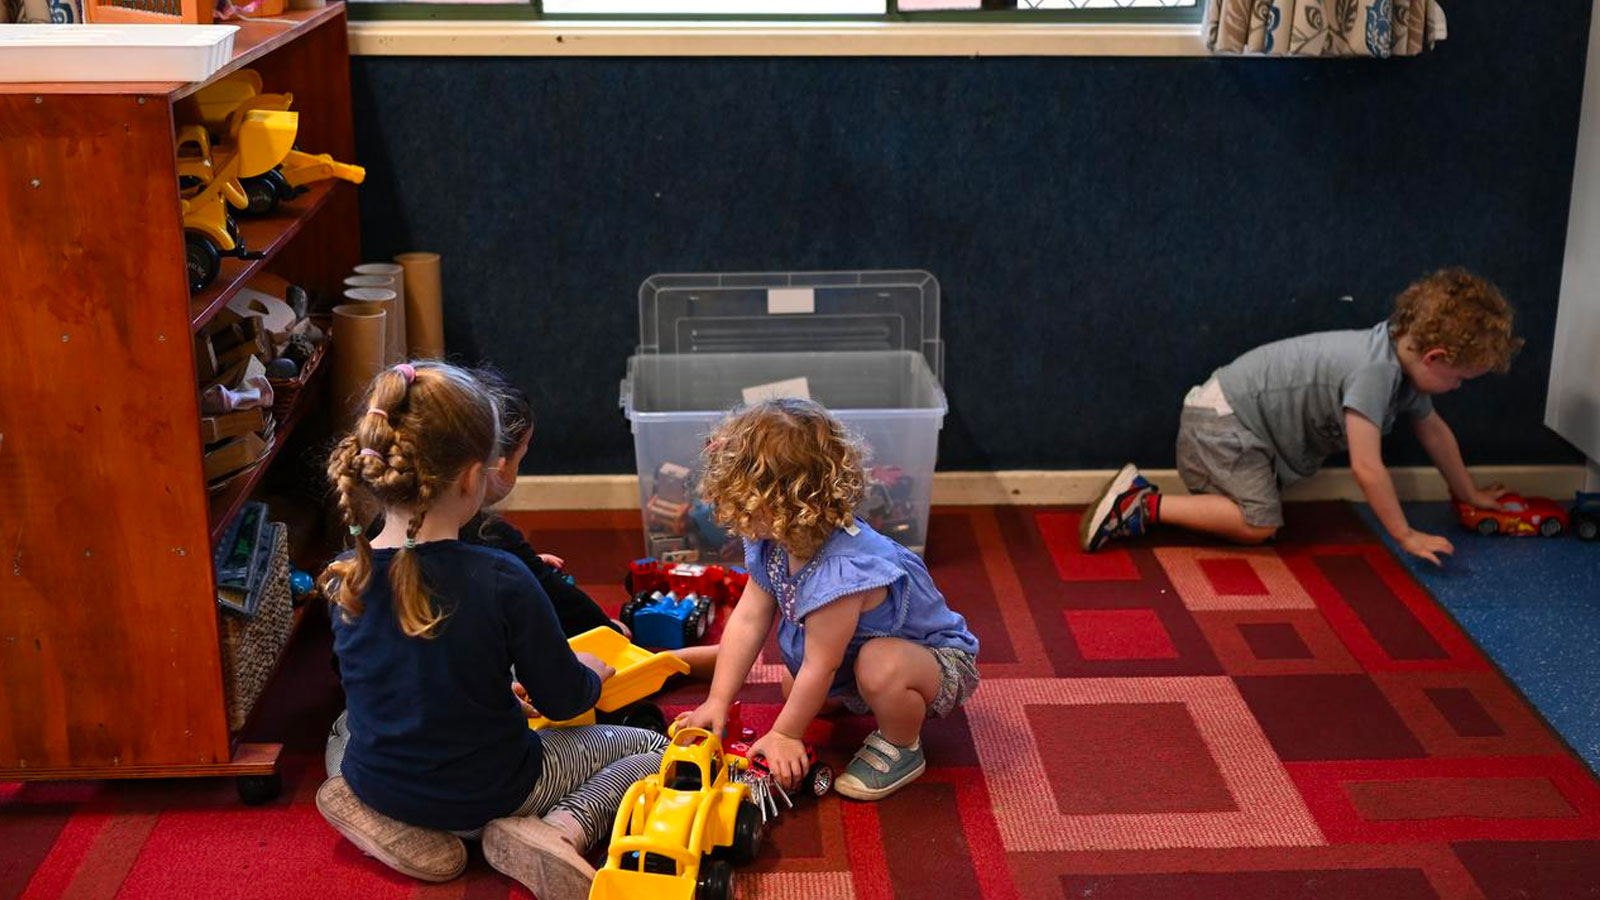 ▲ Childcare still remains 26 per cent below the March 2020 level.